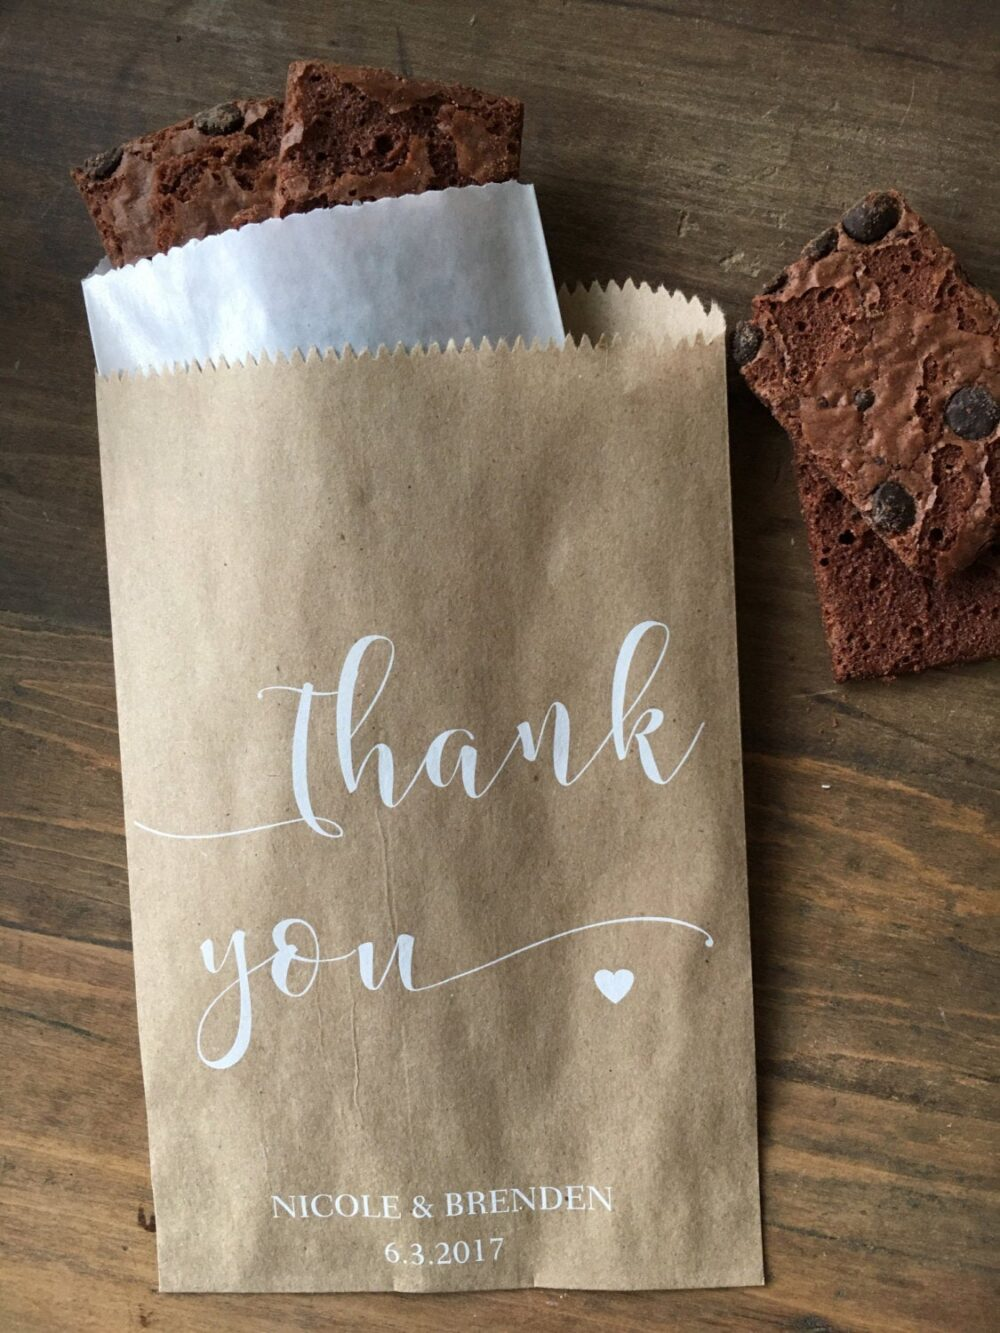 Wedding Favor Bags - Cookie Or Candy Buffet Bags Dessert Bar Favor -Unique Thank You Gift Set Of 25